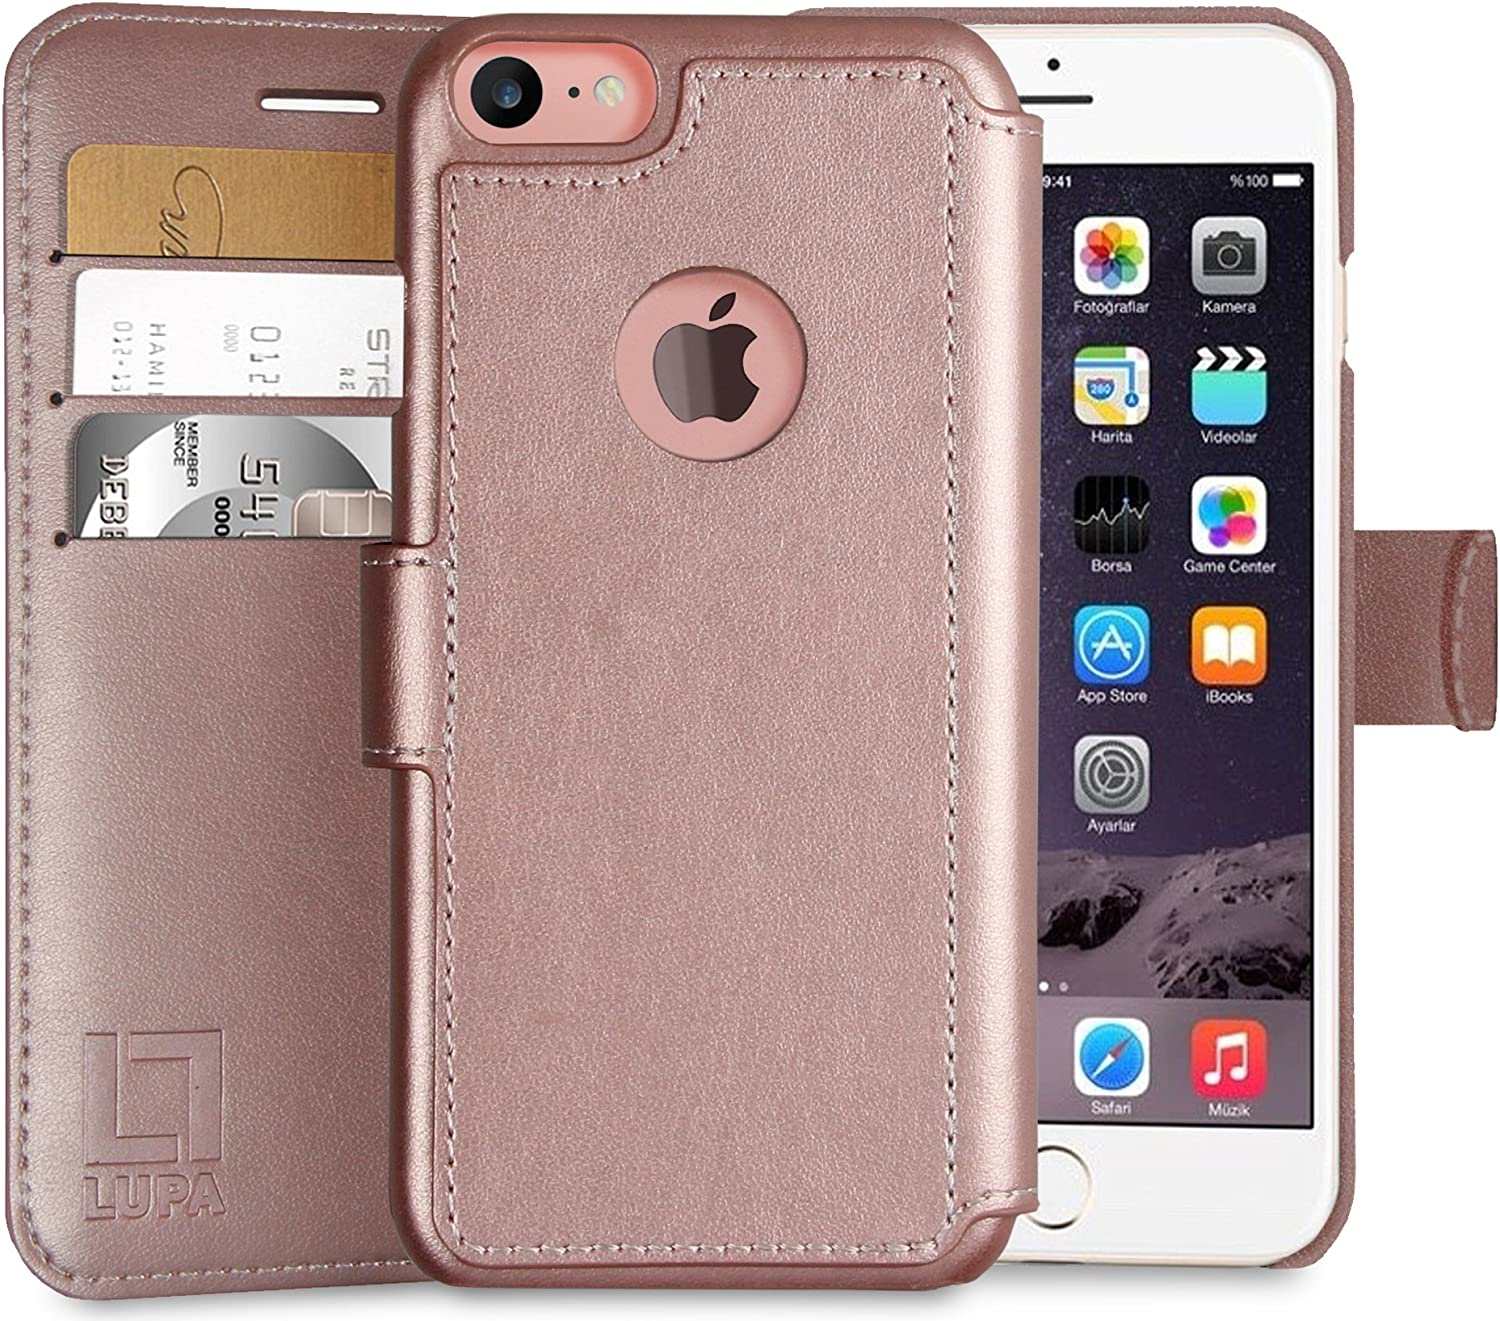 LUPA iPhone 6S Plus Wallet case, iPhone 6 Plus Wallet Case, Durable and Slim, Lightweight with Classic Design & Ultra-Strong Magnetic Closure, Faux Leather, Rose Gold, for Apple iPhone 6s Plus/6 Plus